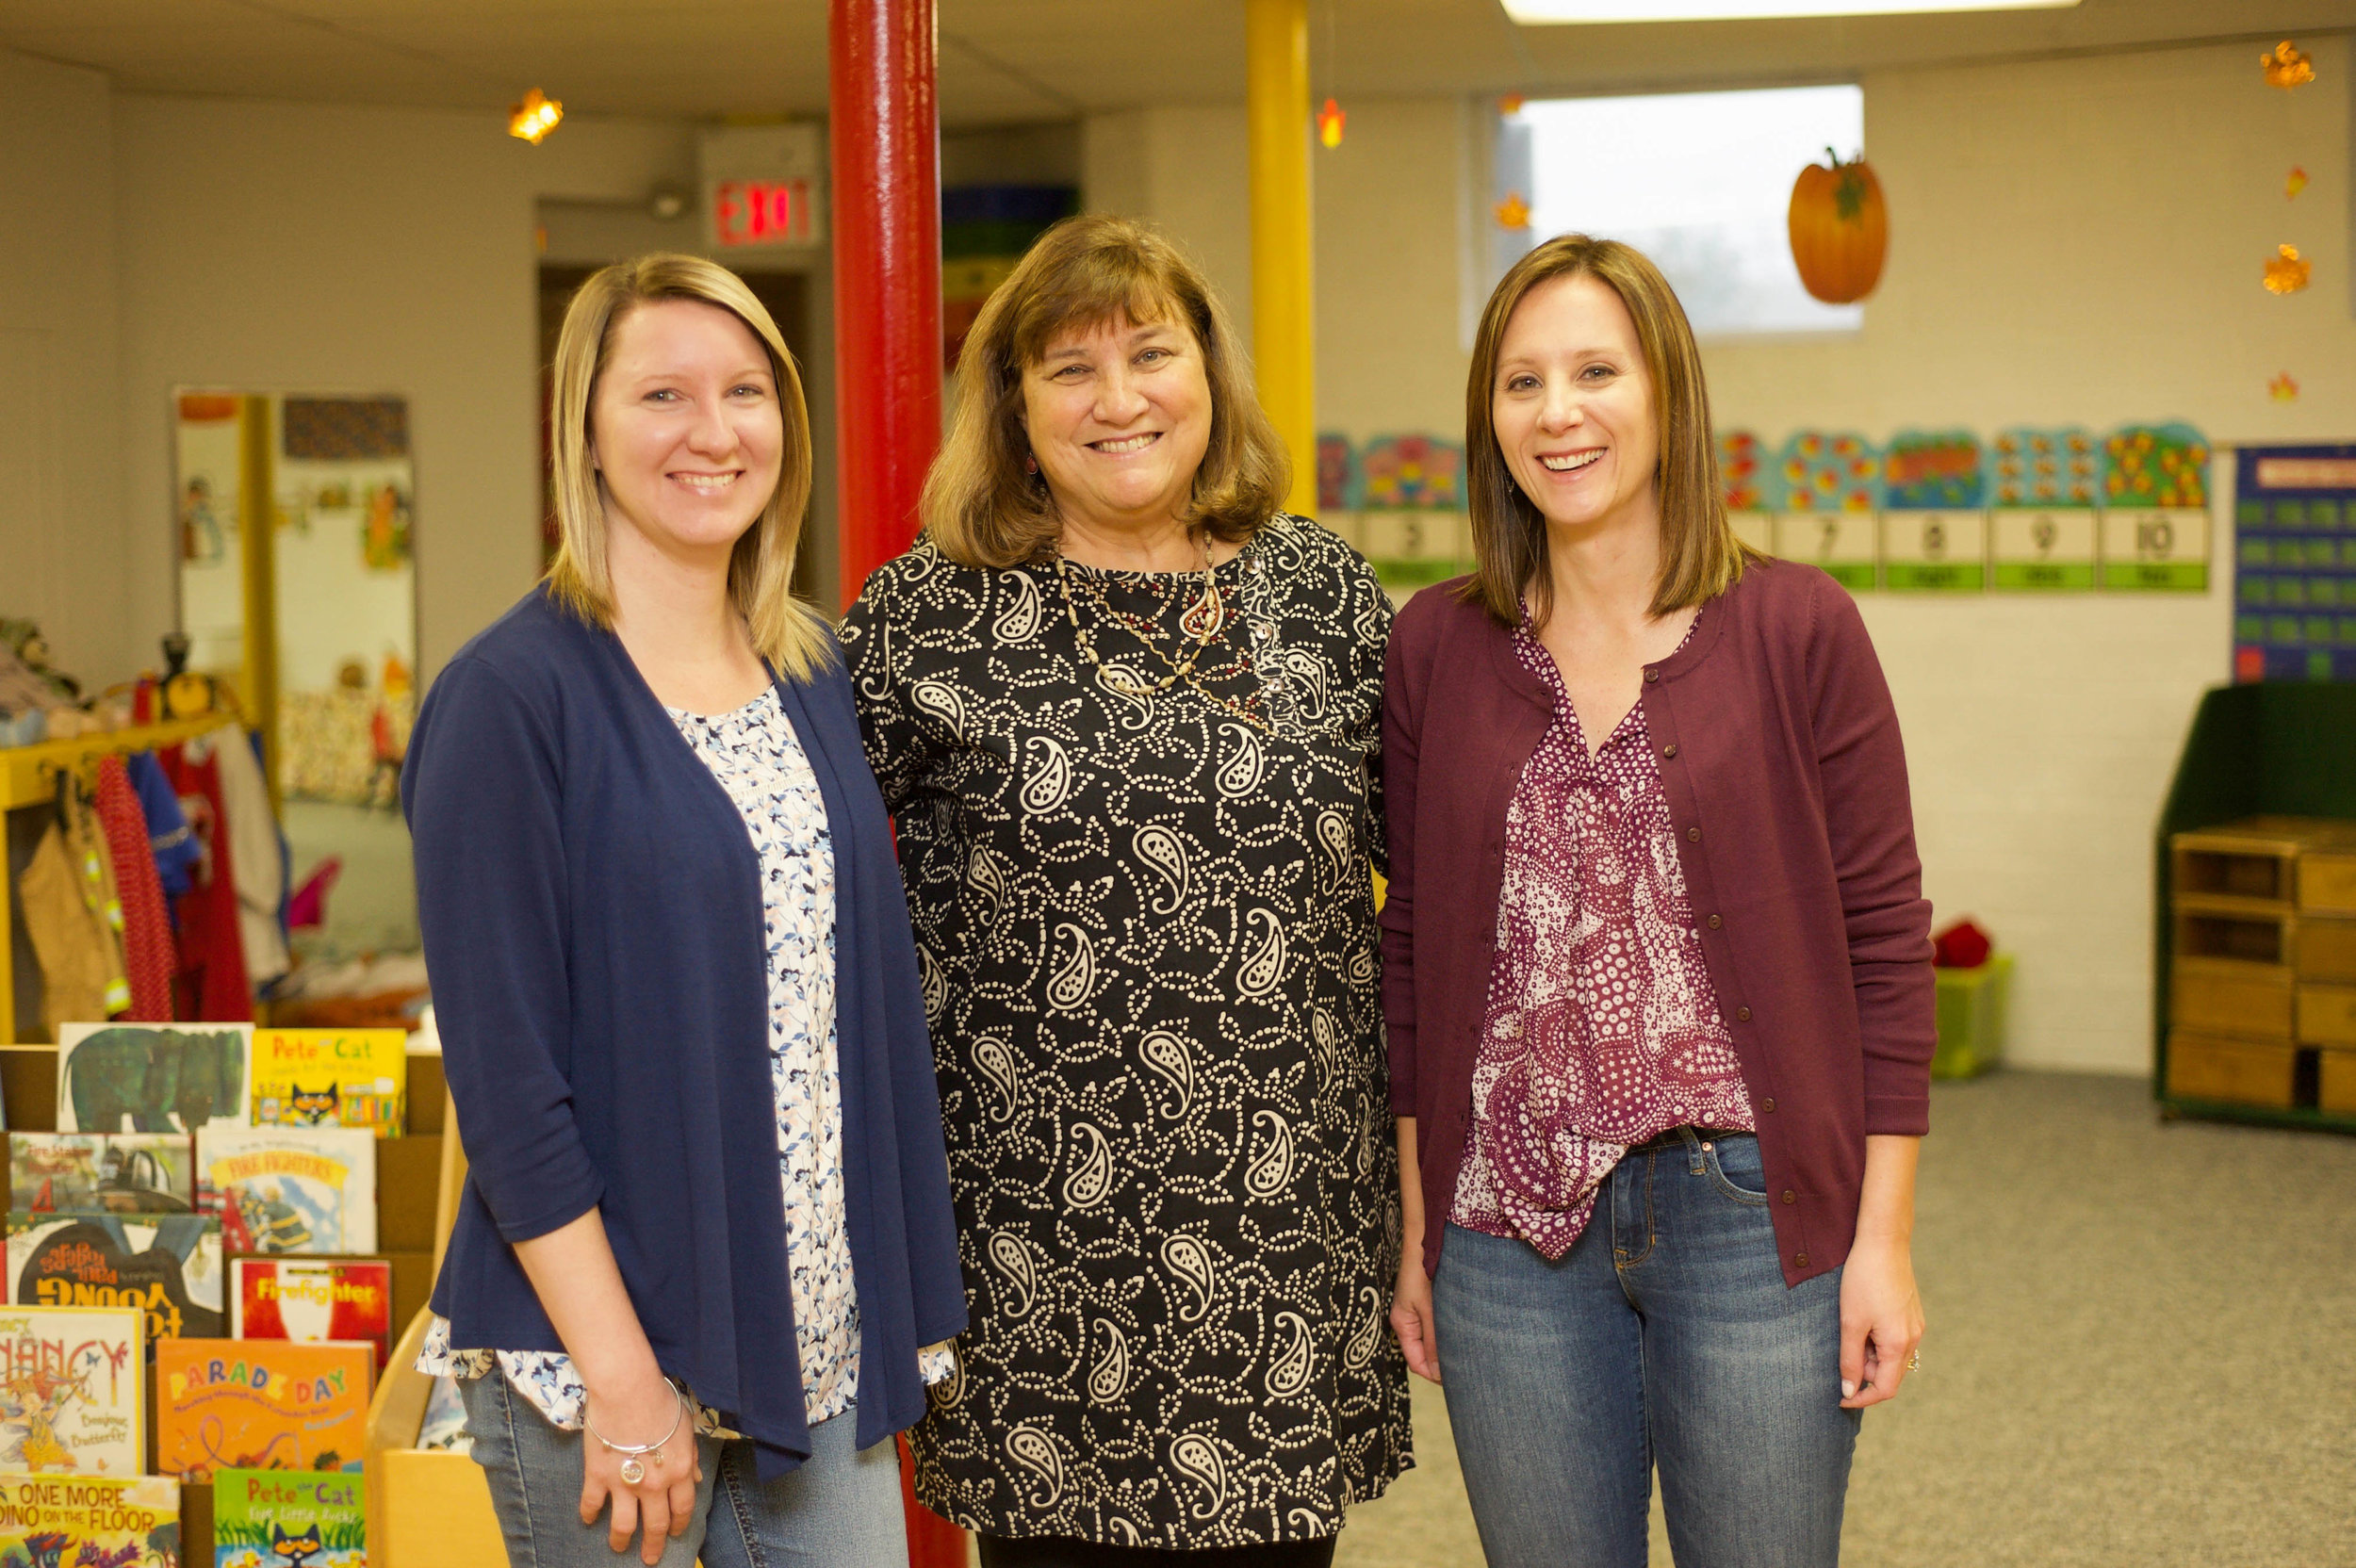 Meet the Team - Susie Miller, Cammie Elick, and Kelly King